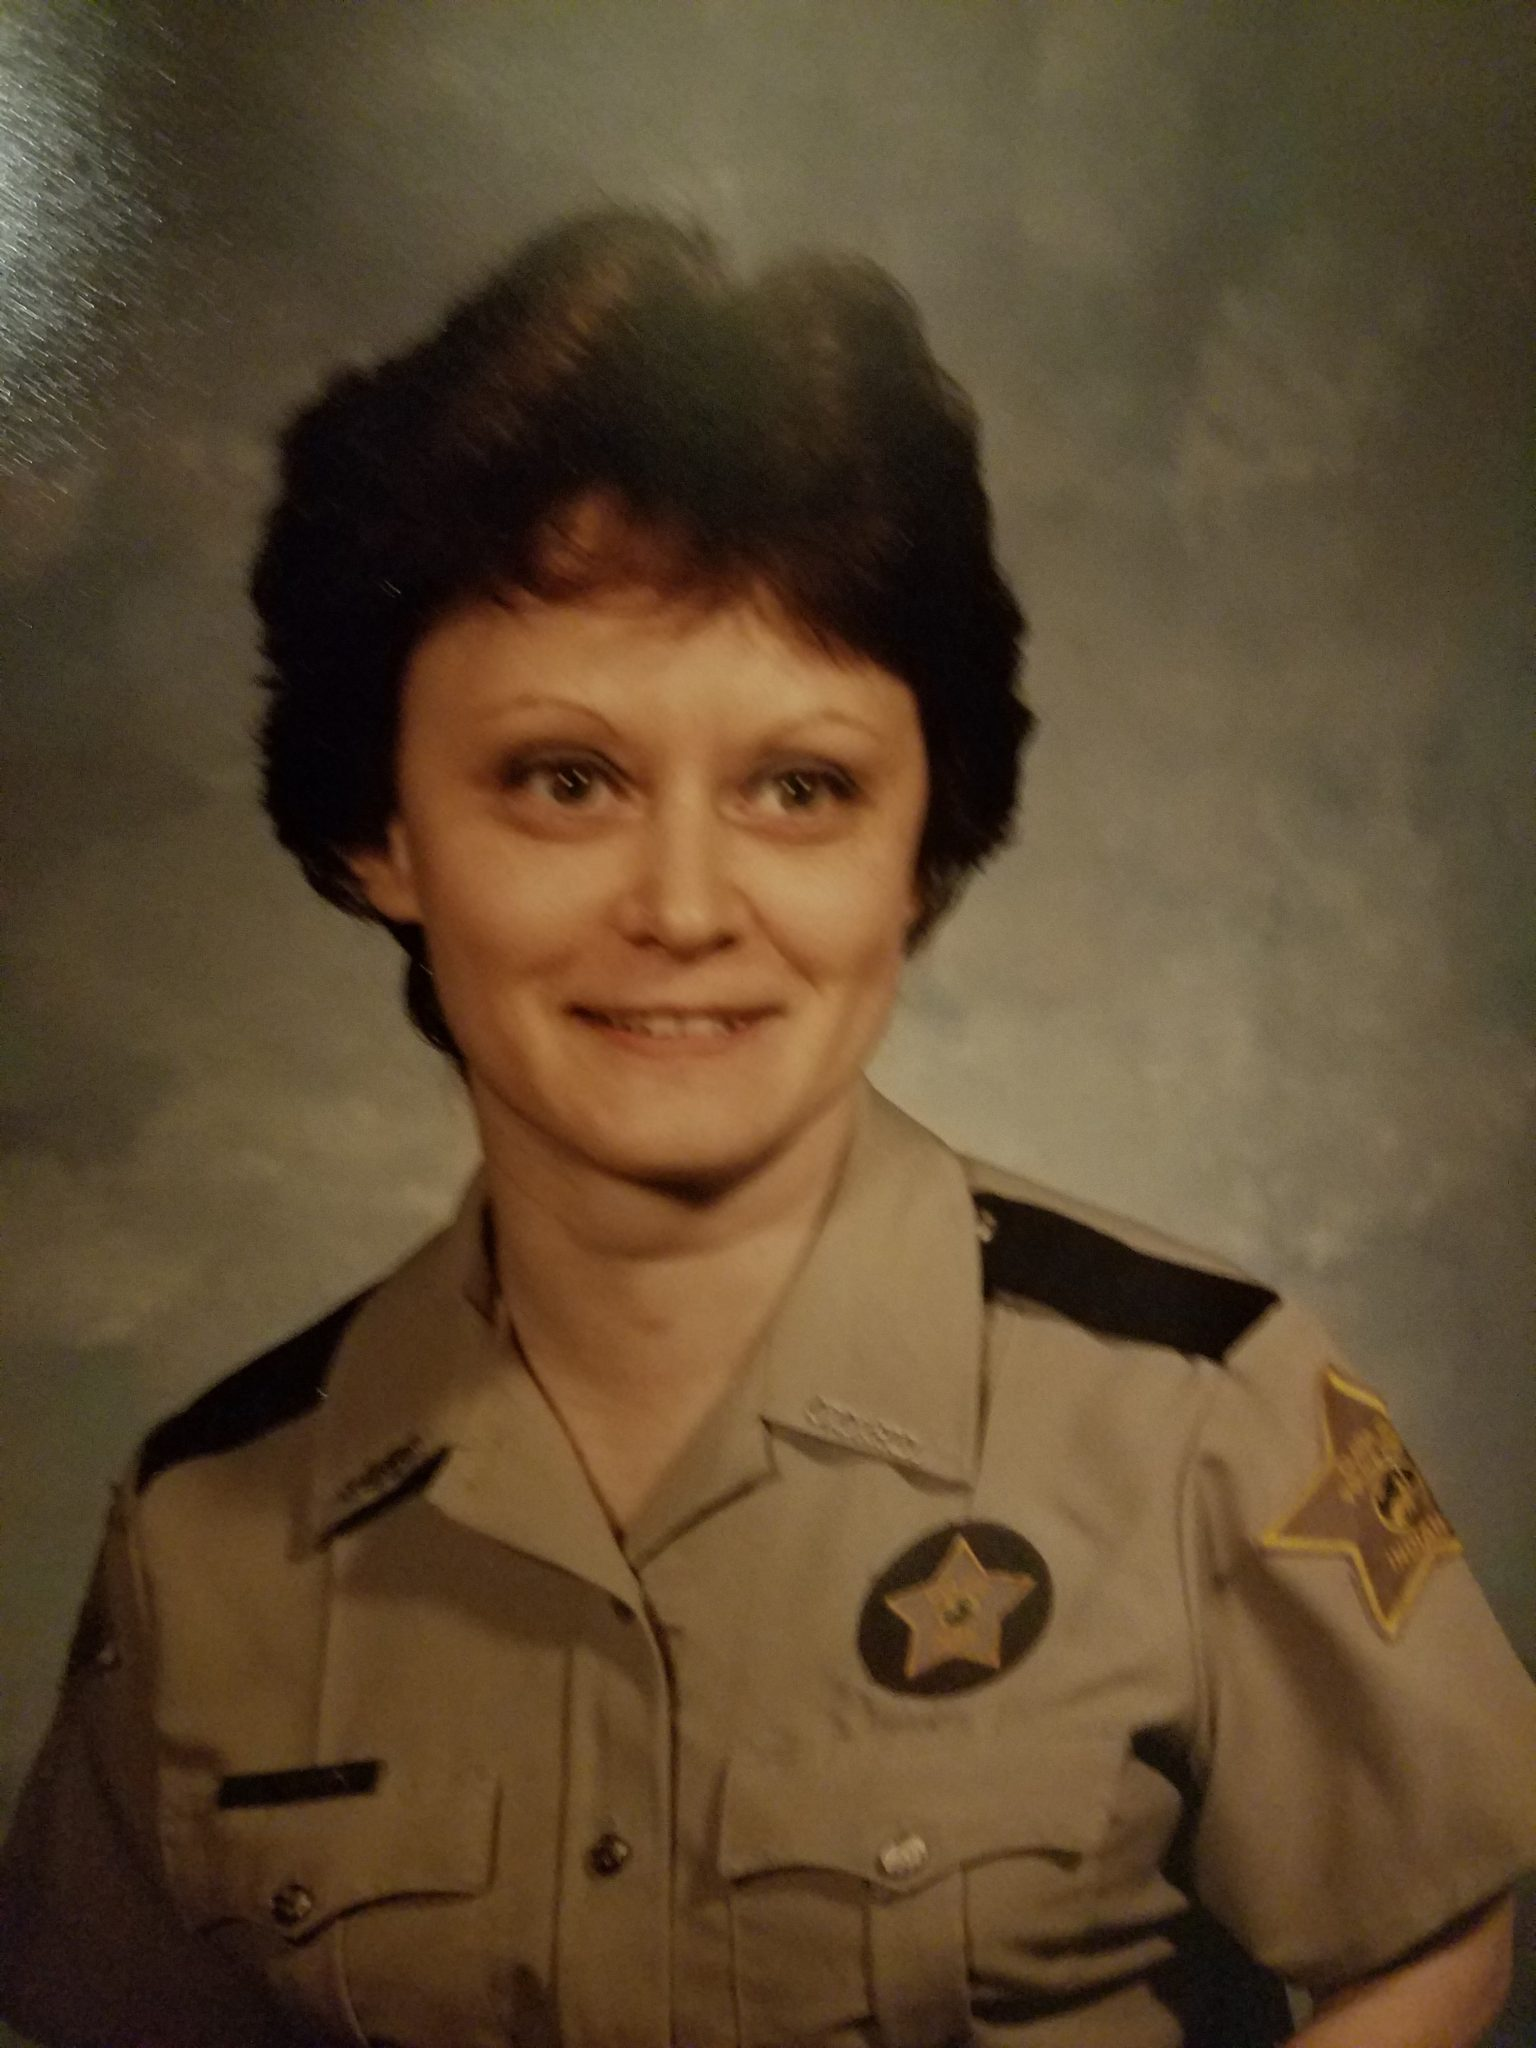 Rose Mary treasured being an Indiana deputy.